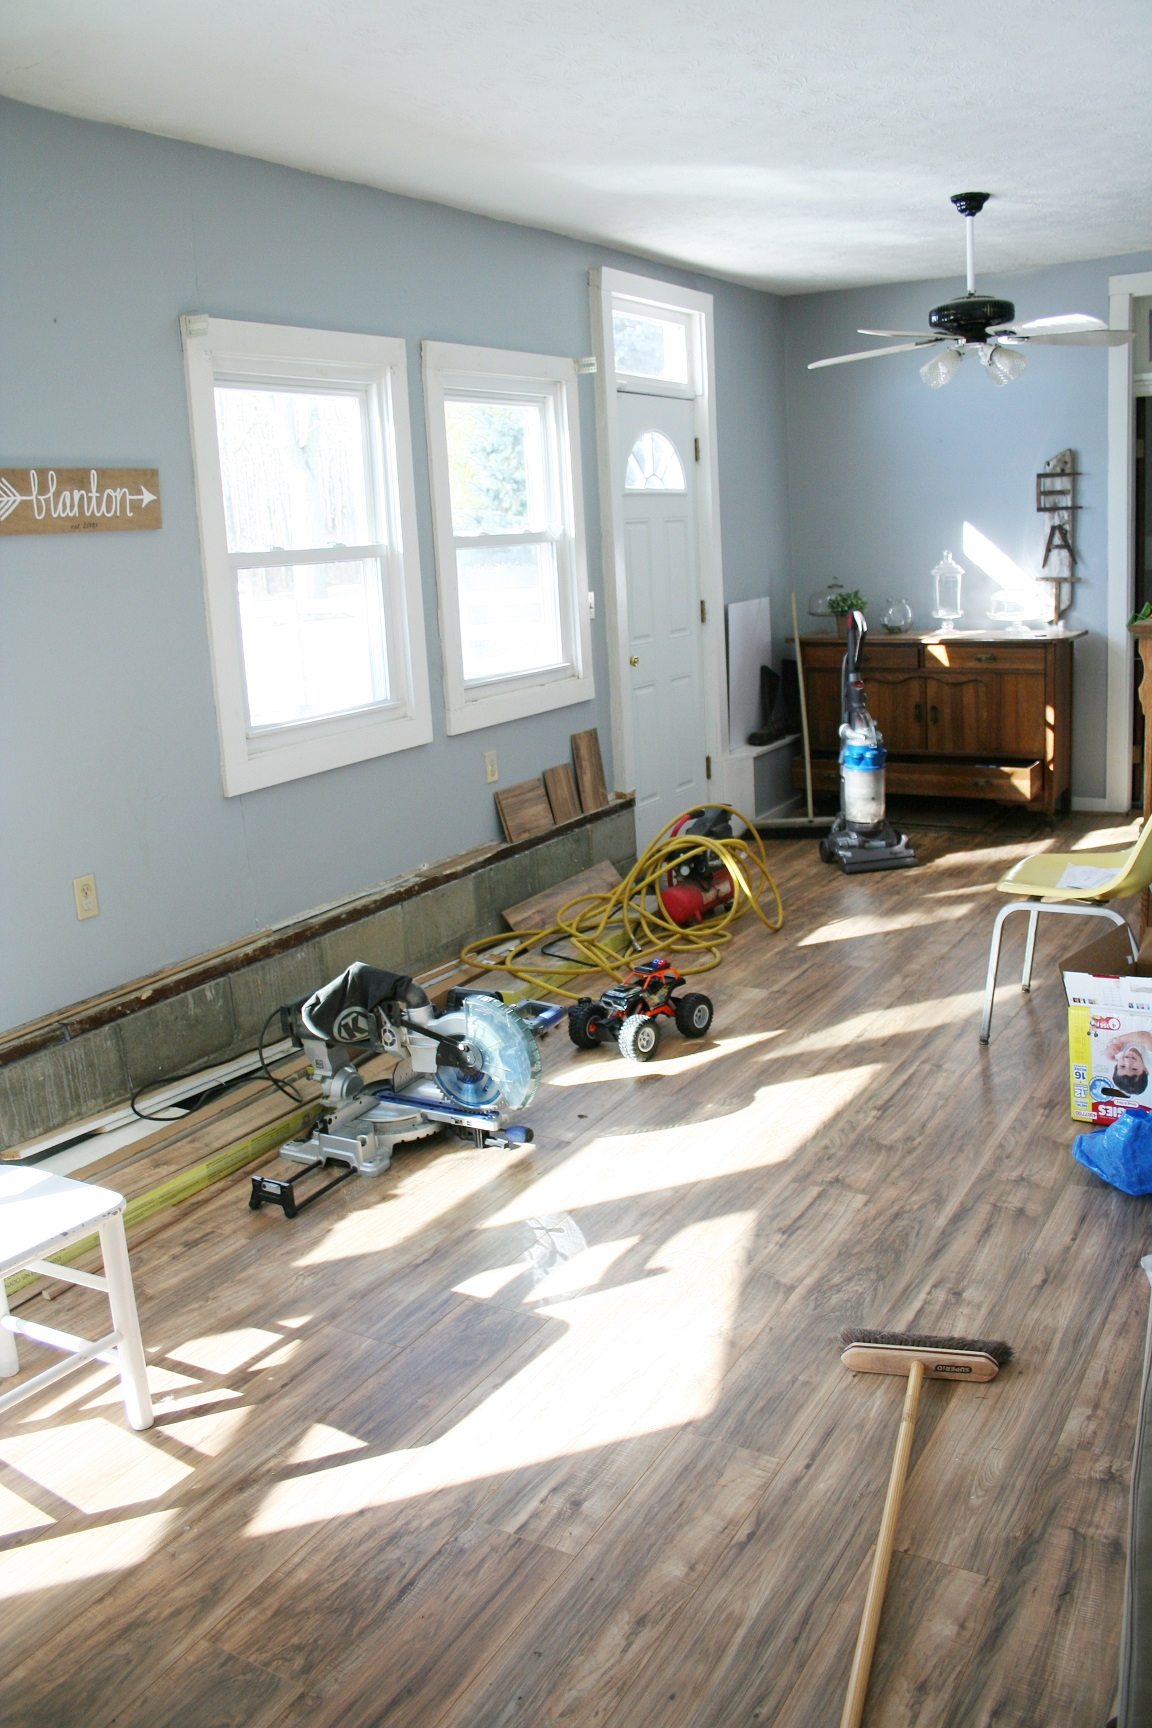 Operation Blanton Farm / Breakfast Room Progress